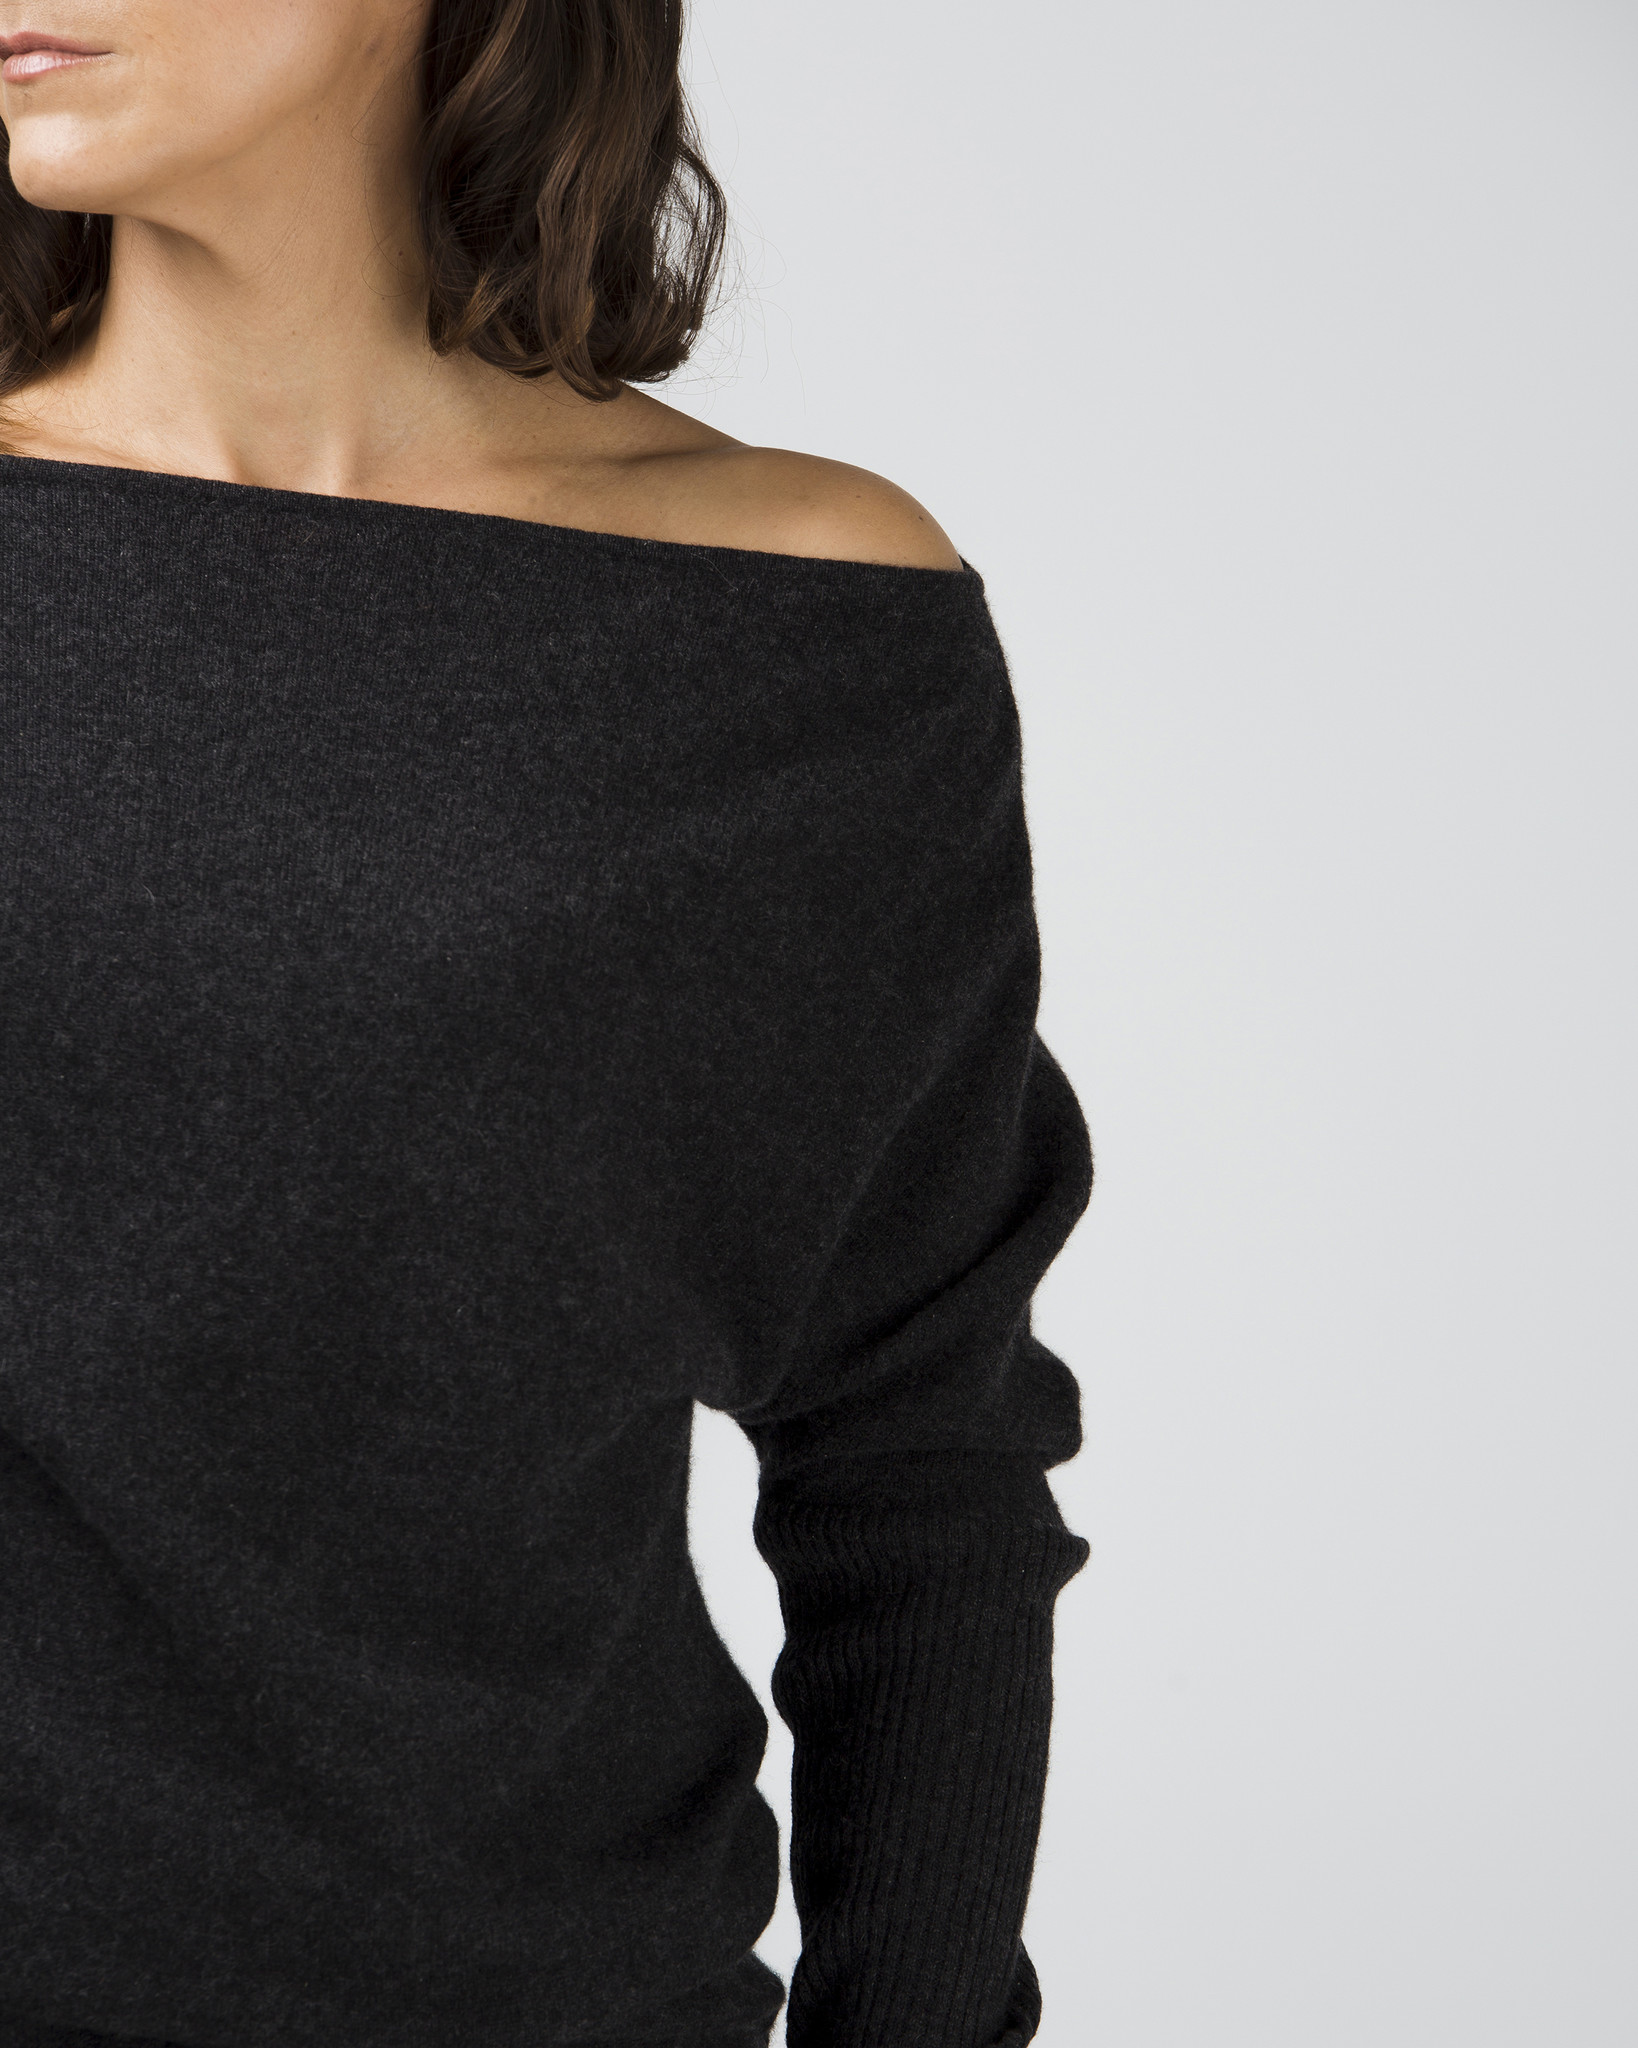 Cashmere Boat Neck Slimline Jumper   $329.00  Available in 2 colours  100% cashmere. our take on the classic boatneck. features: extra long signature sassind fitted ribbed sleeves, sleeves and body for 'rouching'. perfect to accentuate the waist or disguise problem areas.